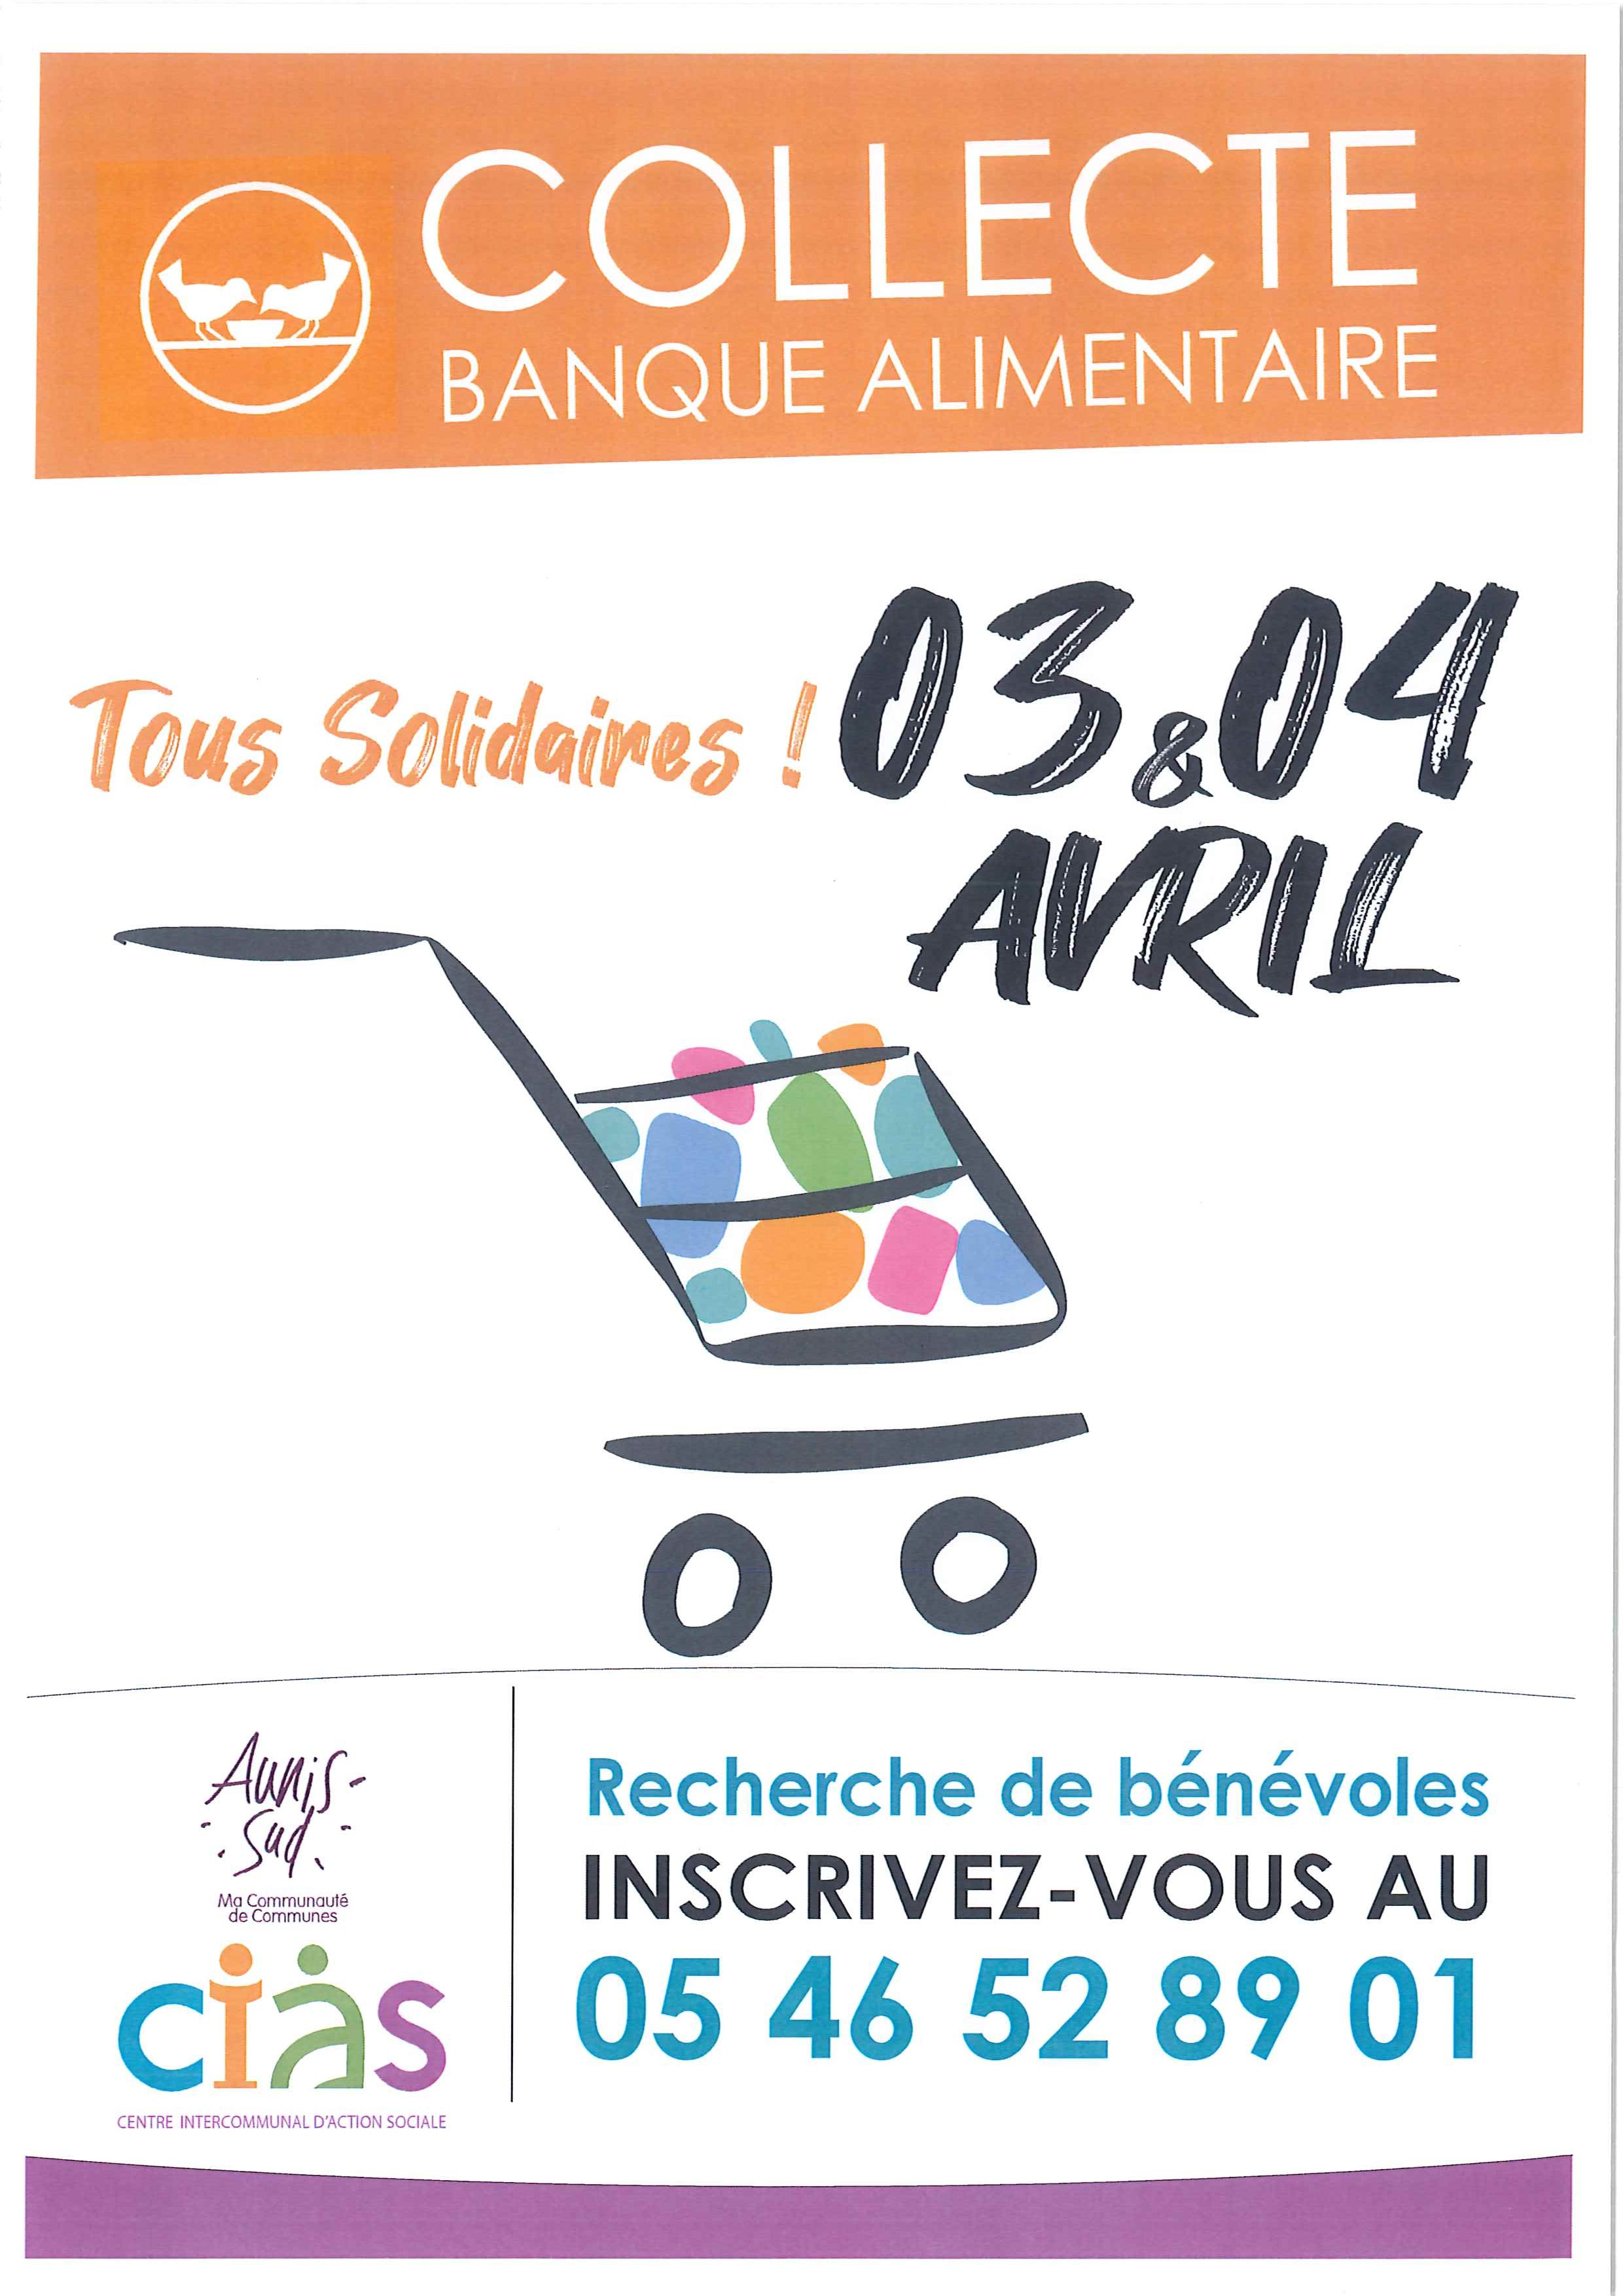 Banque_alimentaire_2020.jpg